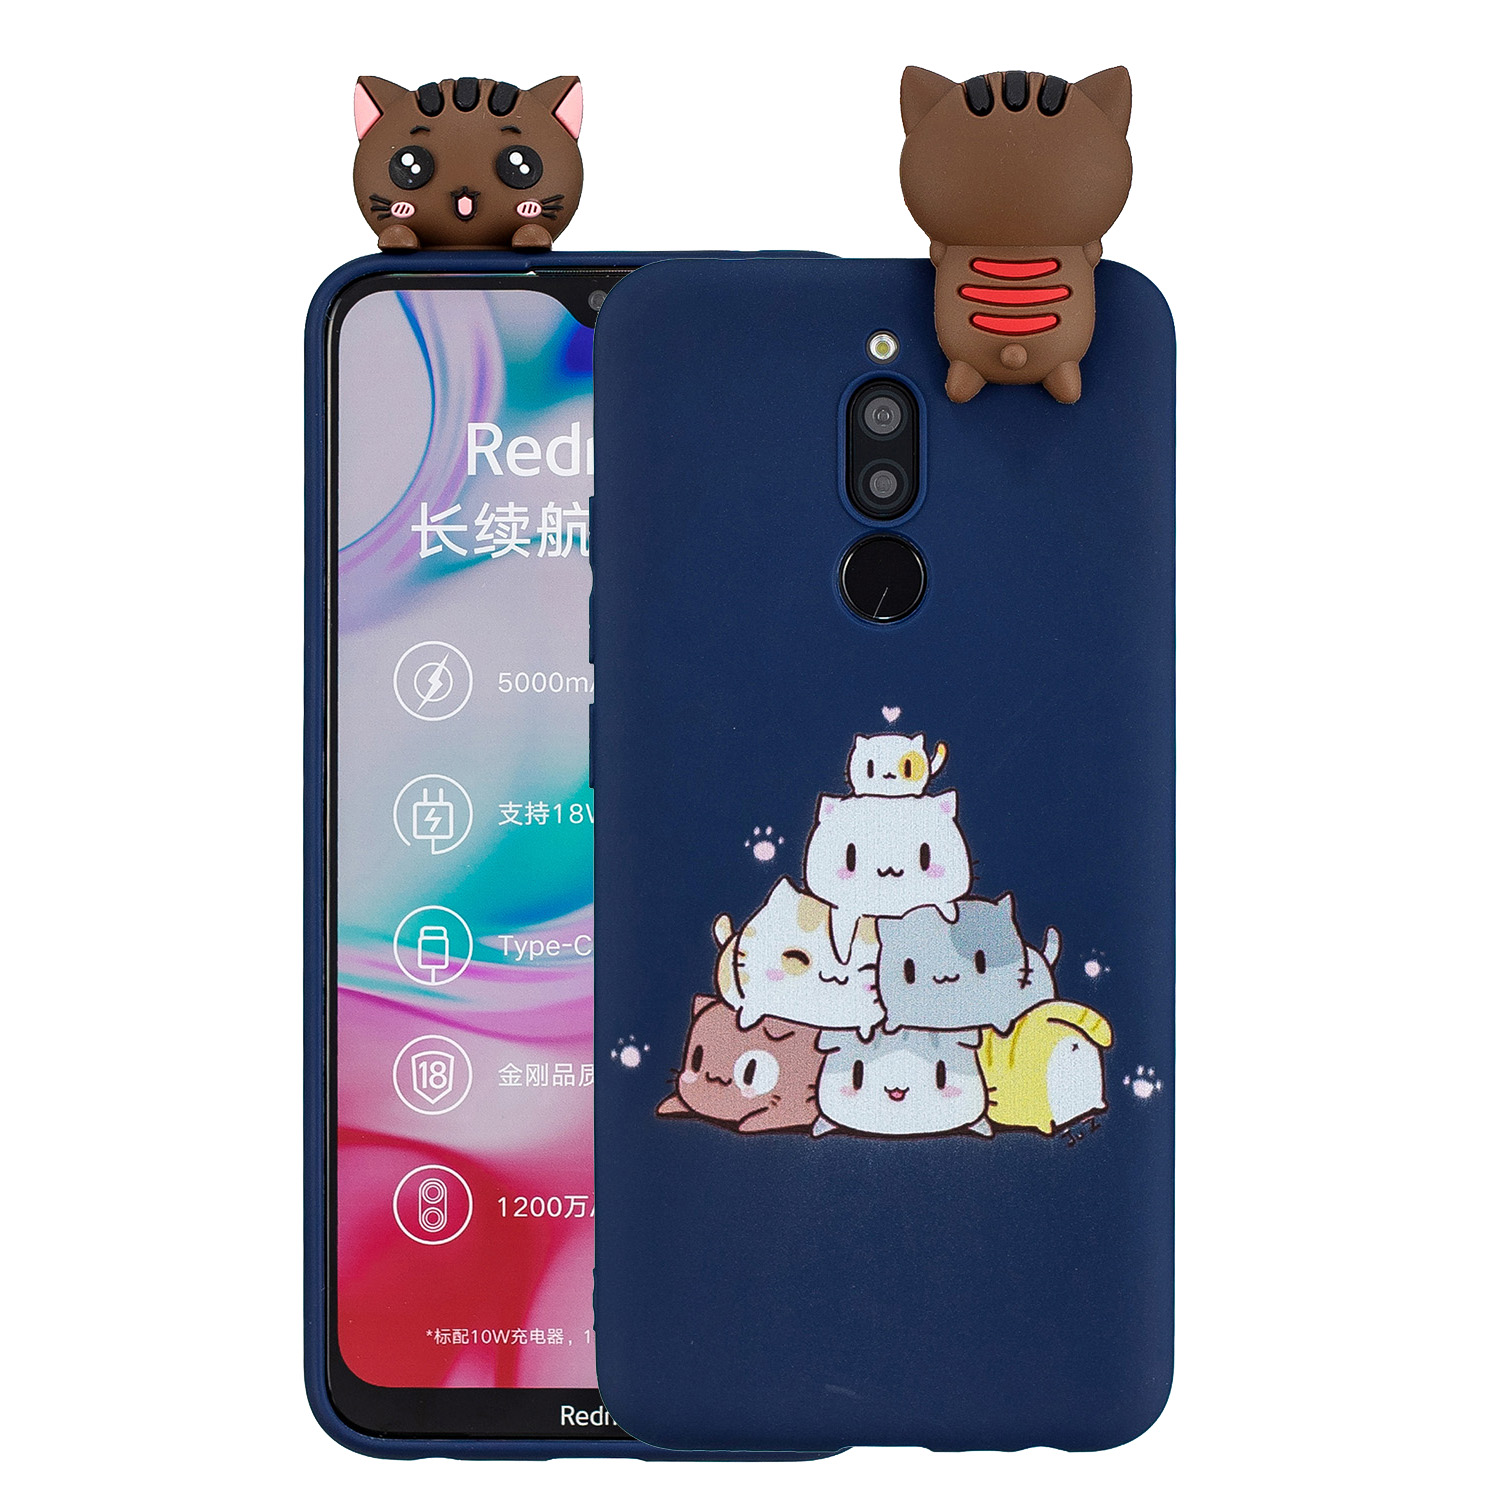 For Redmi 8/8A/5/Note 8T Mobile Phone Case Cute Cellphone Shell Soft TPU Cover with Cartoon Pig Duck Bear Kitten Lovely Pattern Royal blue